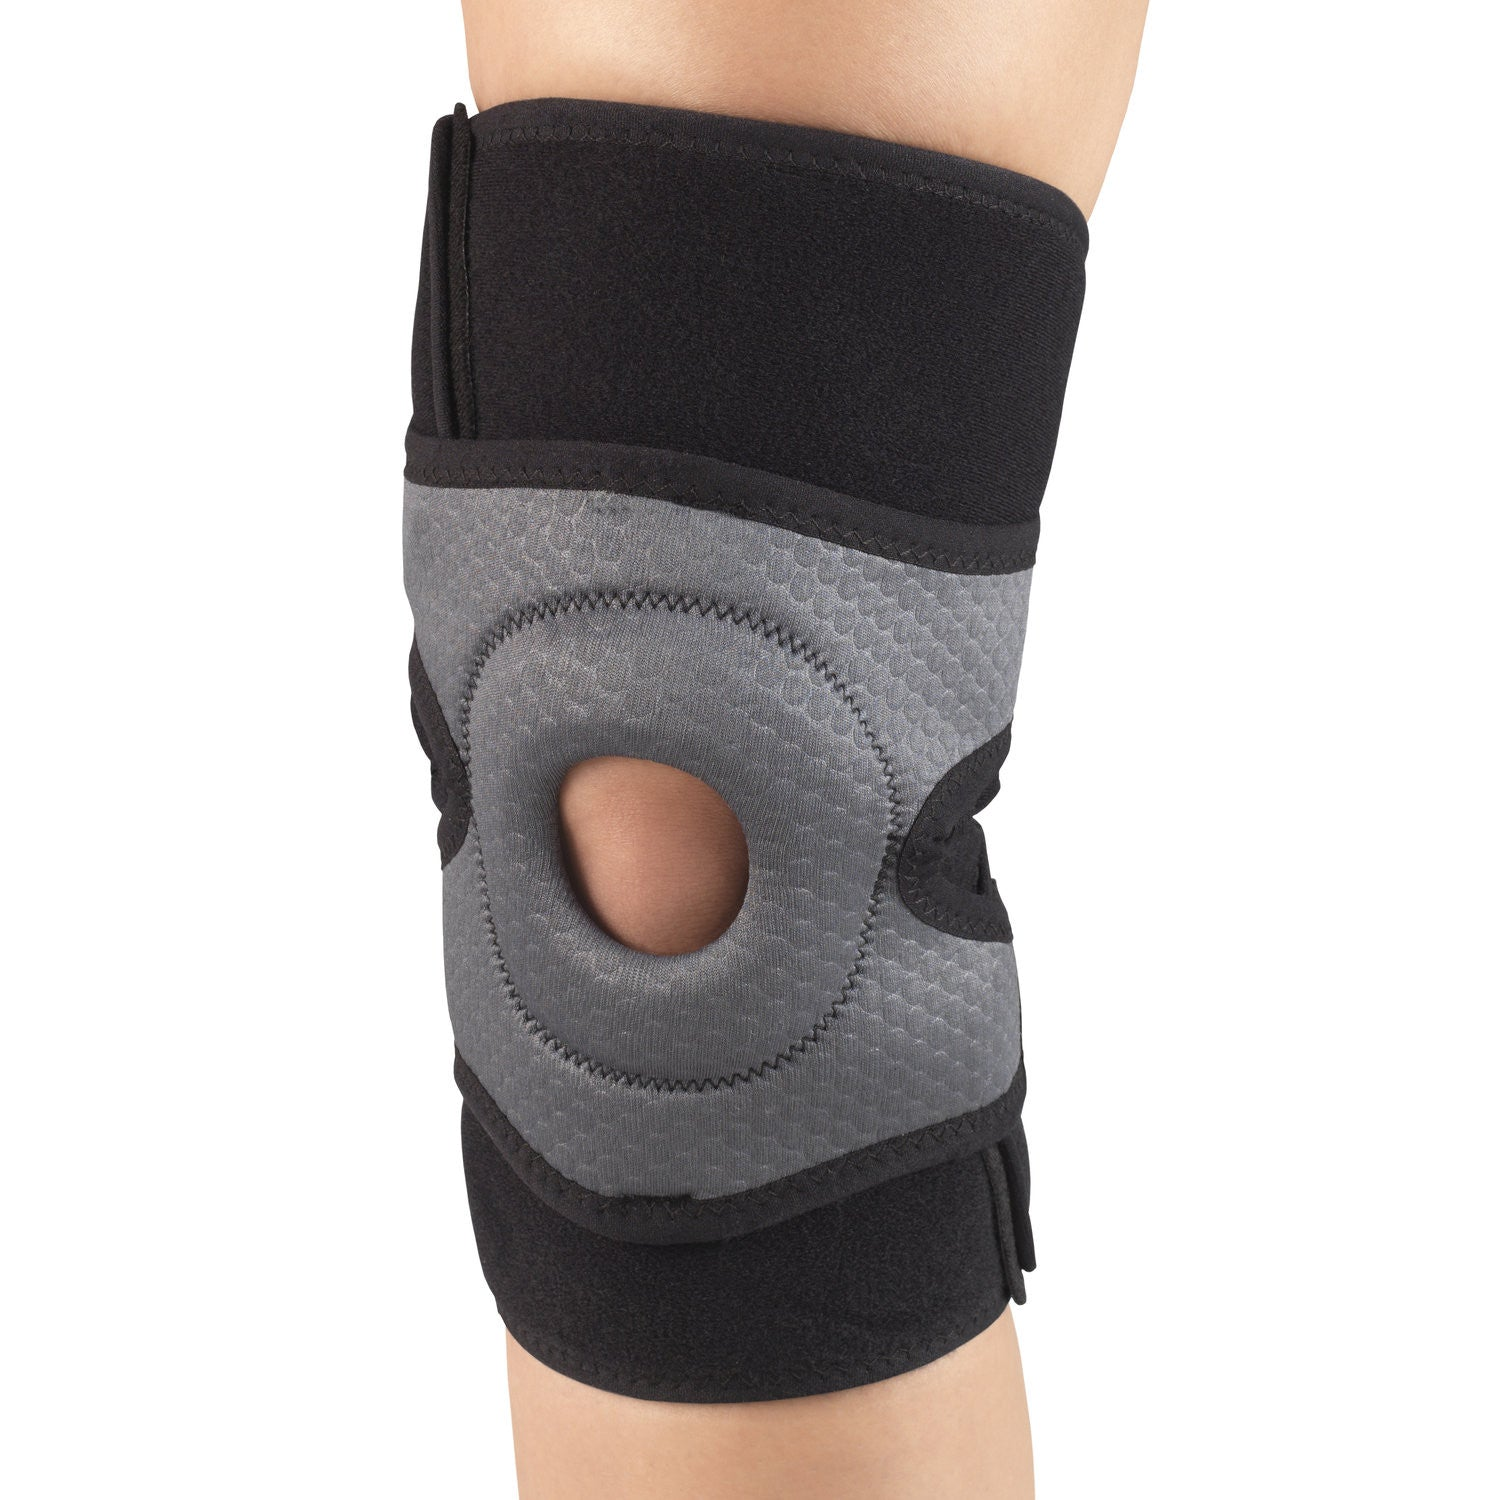 AIRMESH KNEE SUPPORT WITH STABILIZER PAD